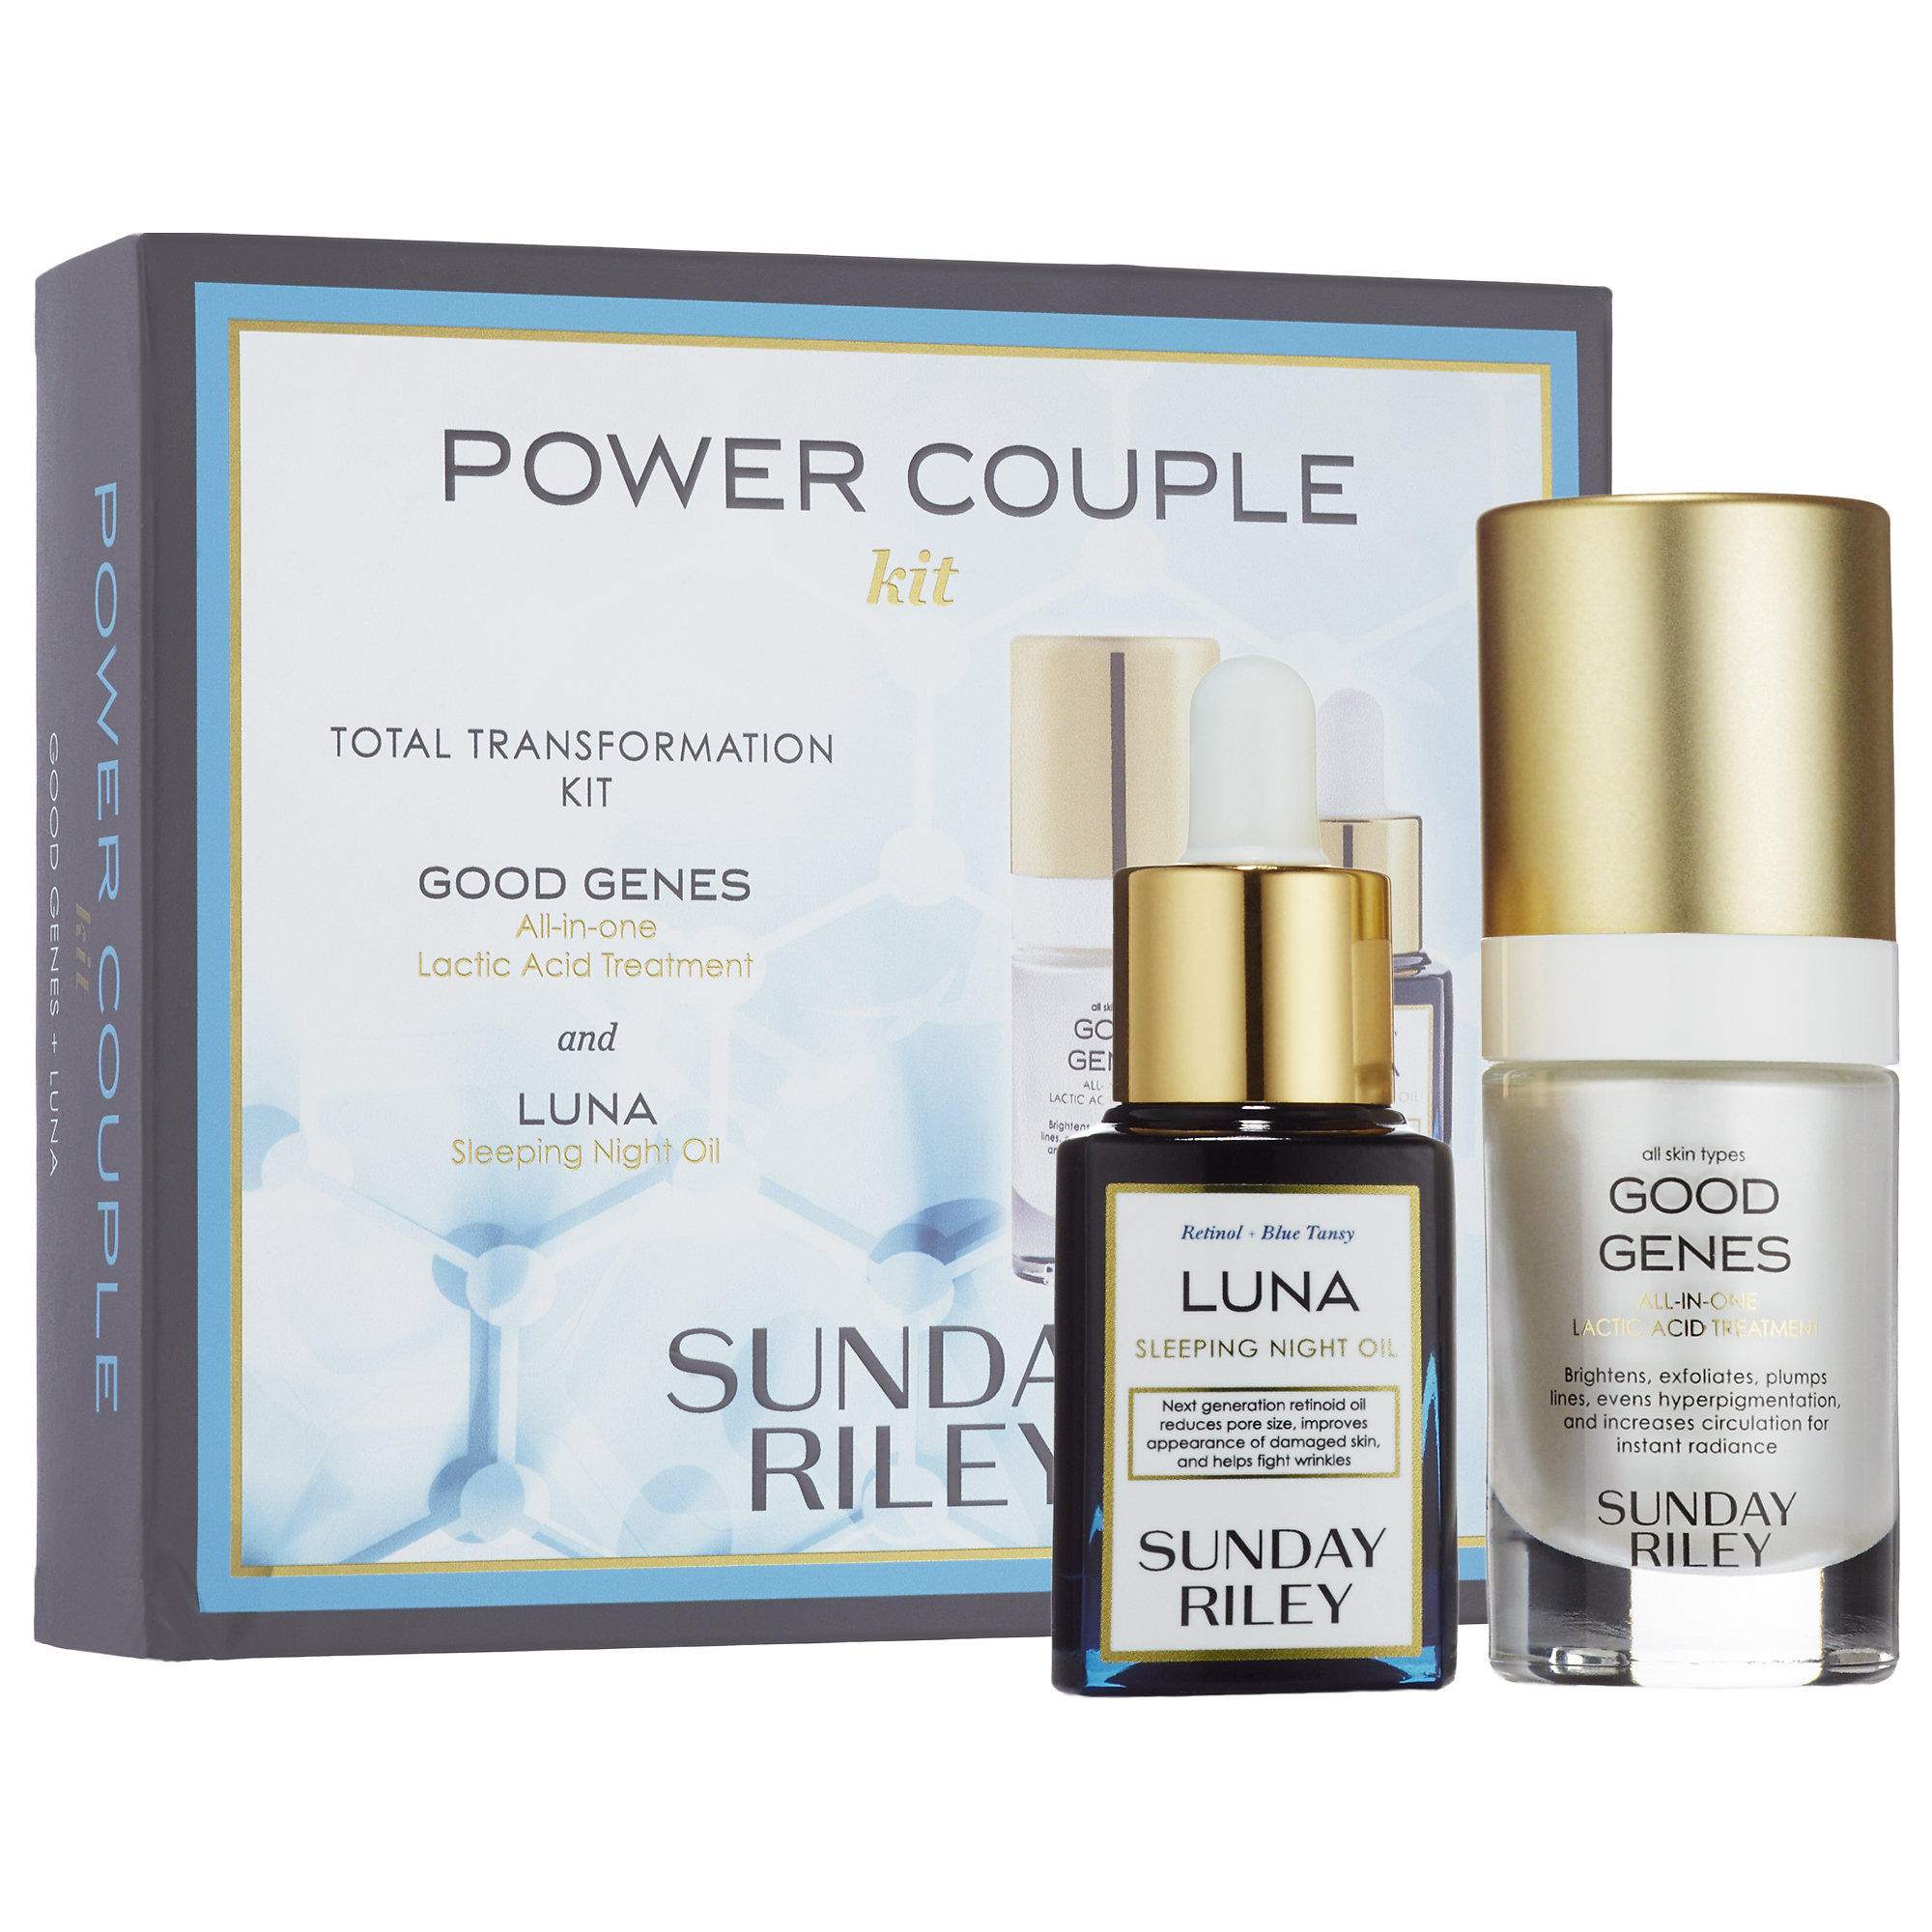 New Release Sunday Riley launched Power Couple Duo: Total Transformation Kit